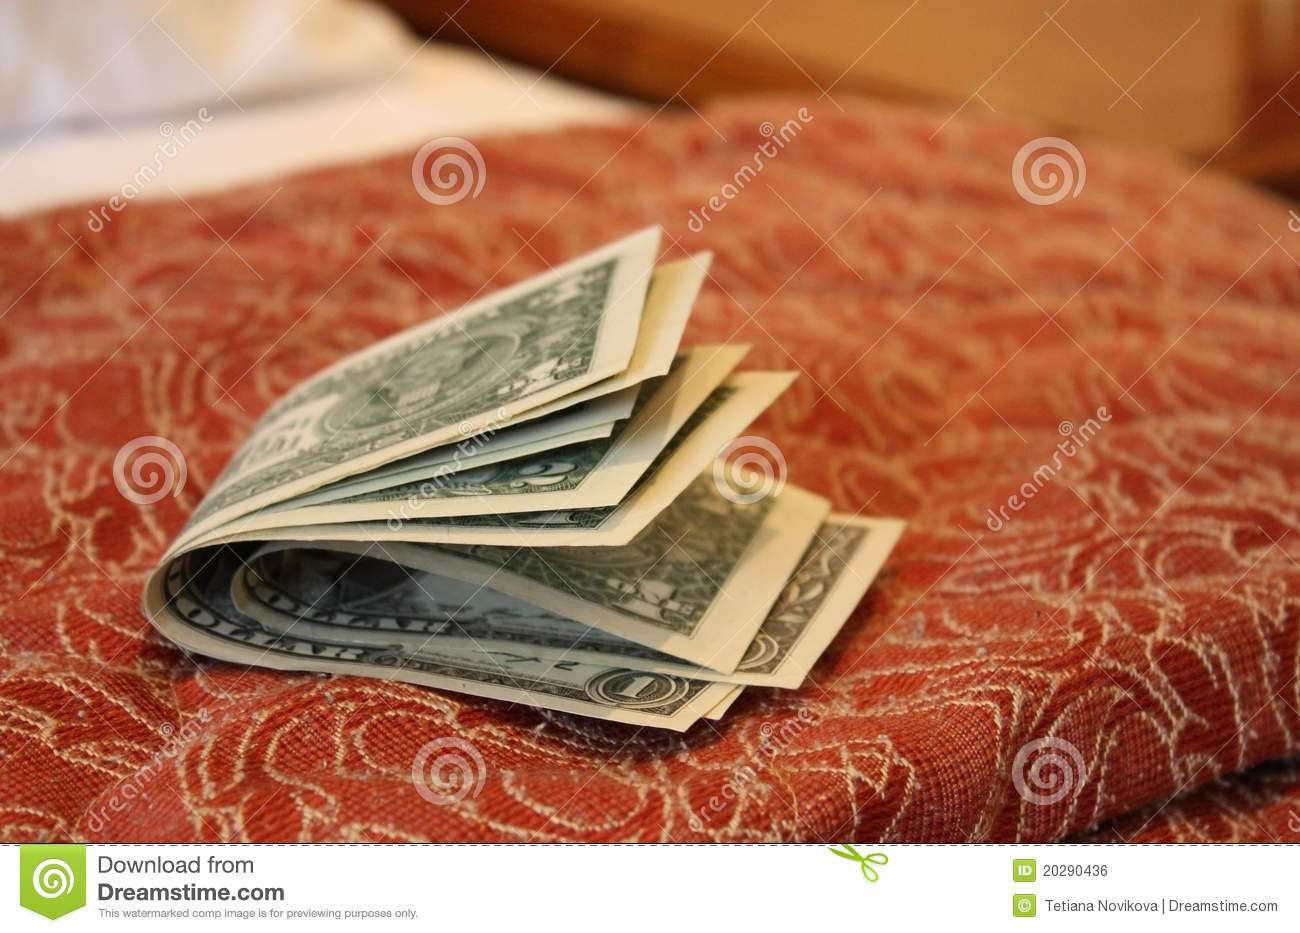 money on hotel bed stock photo. image of luggage, tripping - 20290436